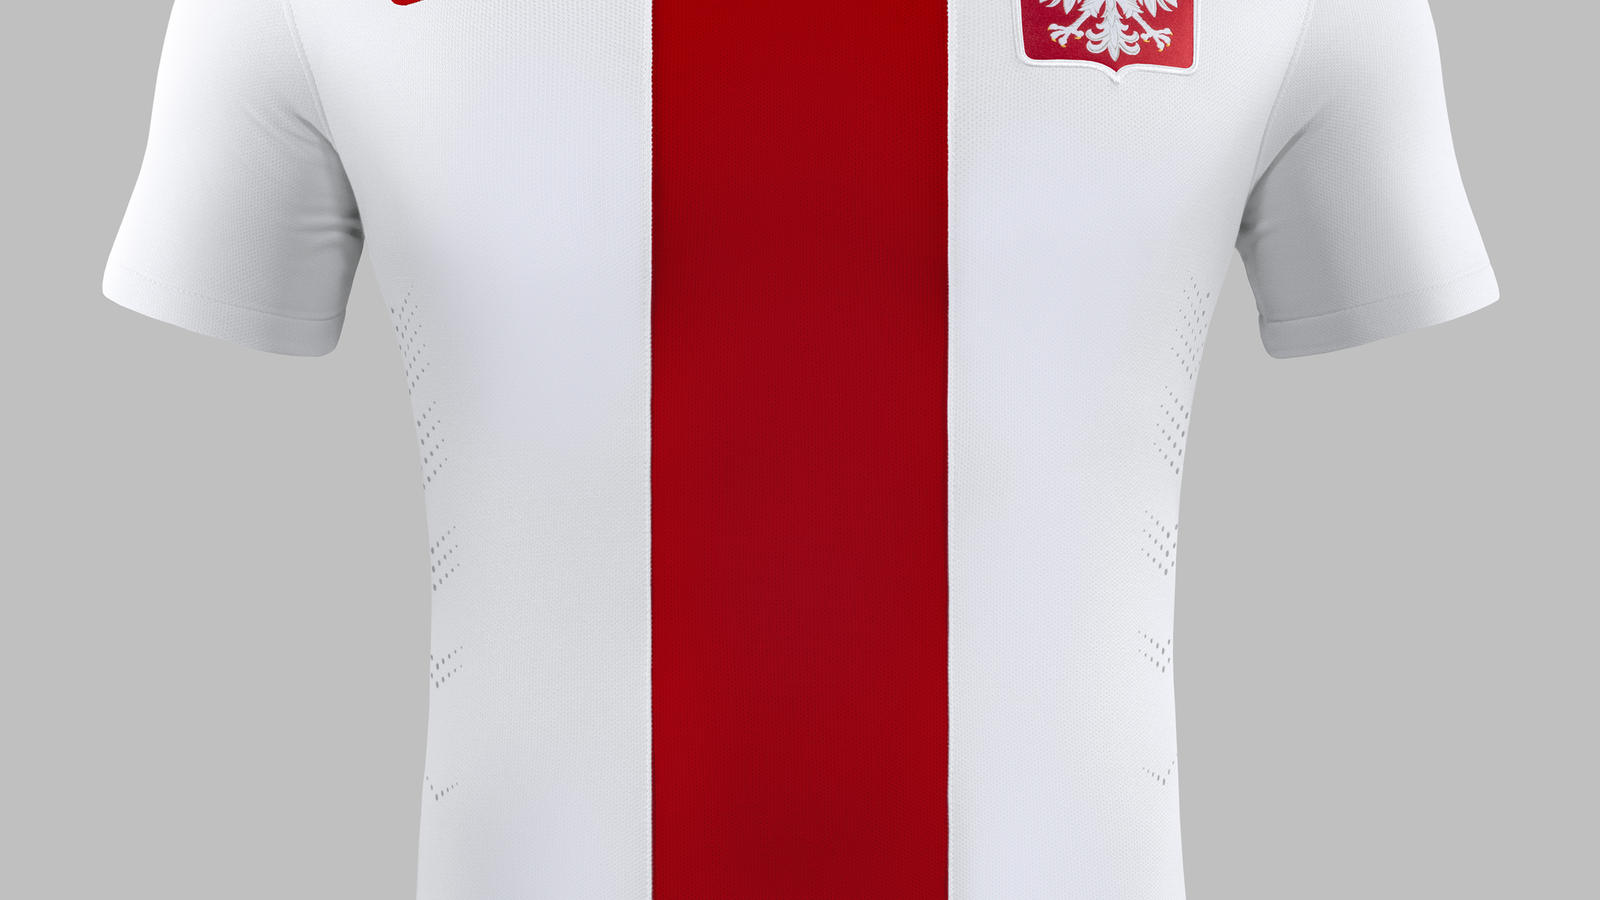 poland unveils new national team kit with nike nike news